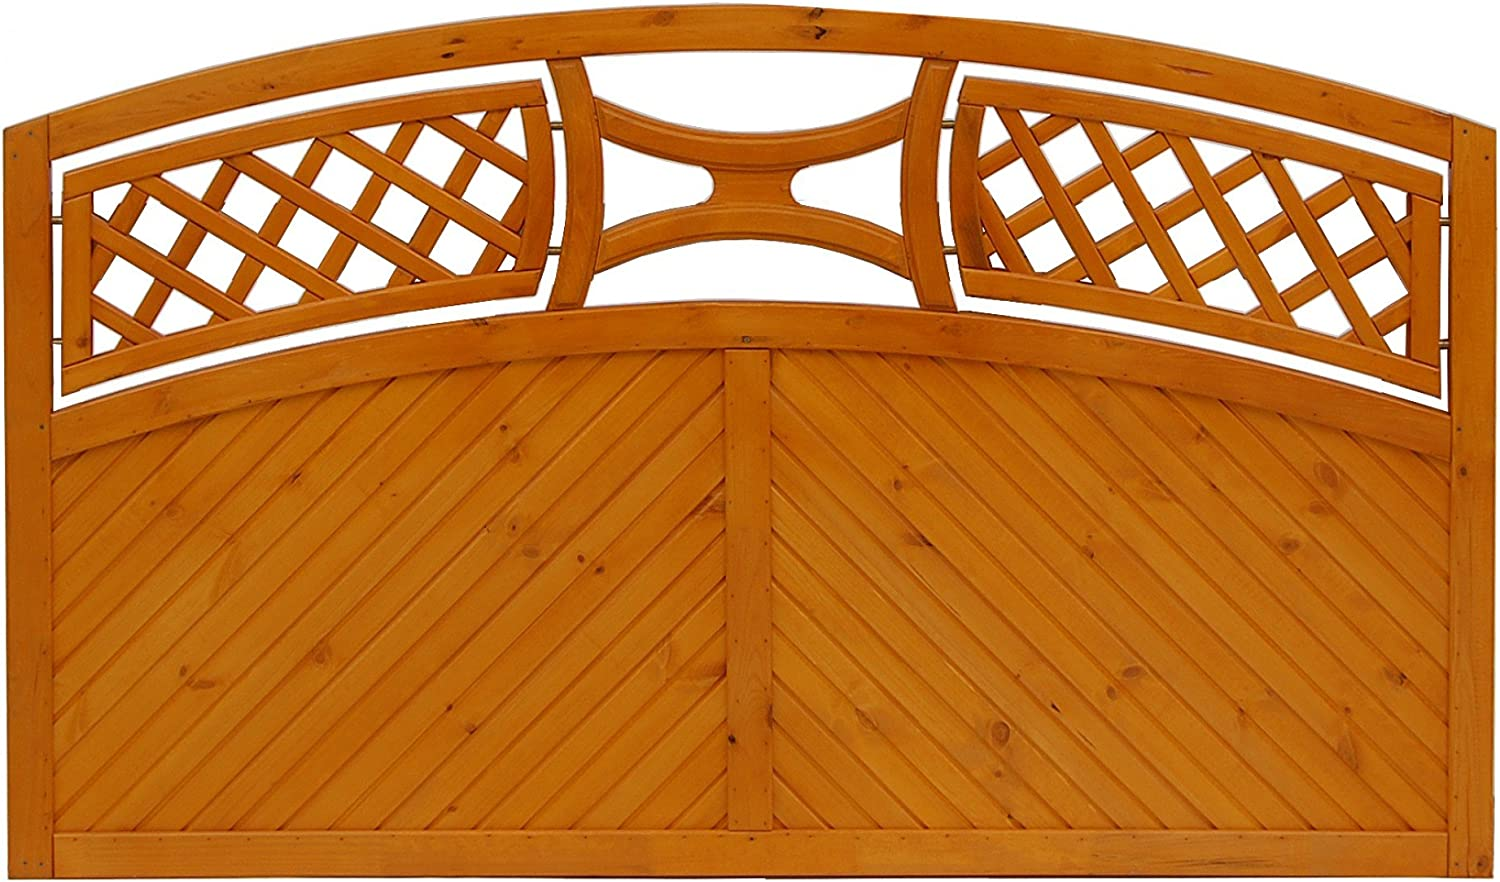 Andrewex wooden fence, fence panel,quality fence panels, border fence 90 106 x 180, varnished, pinie